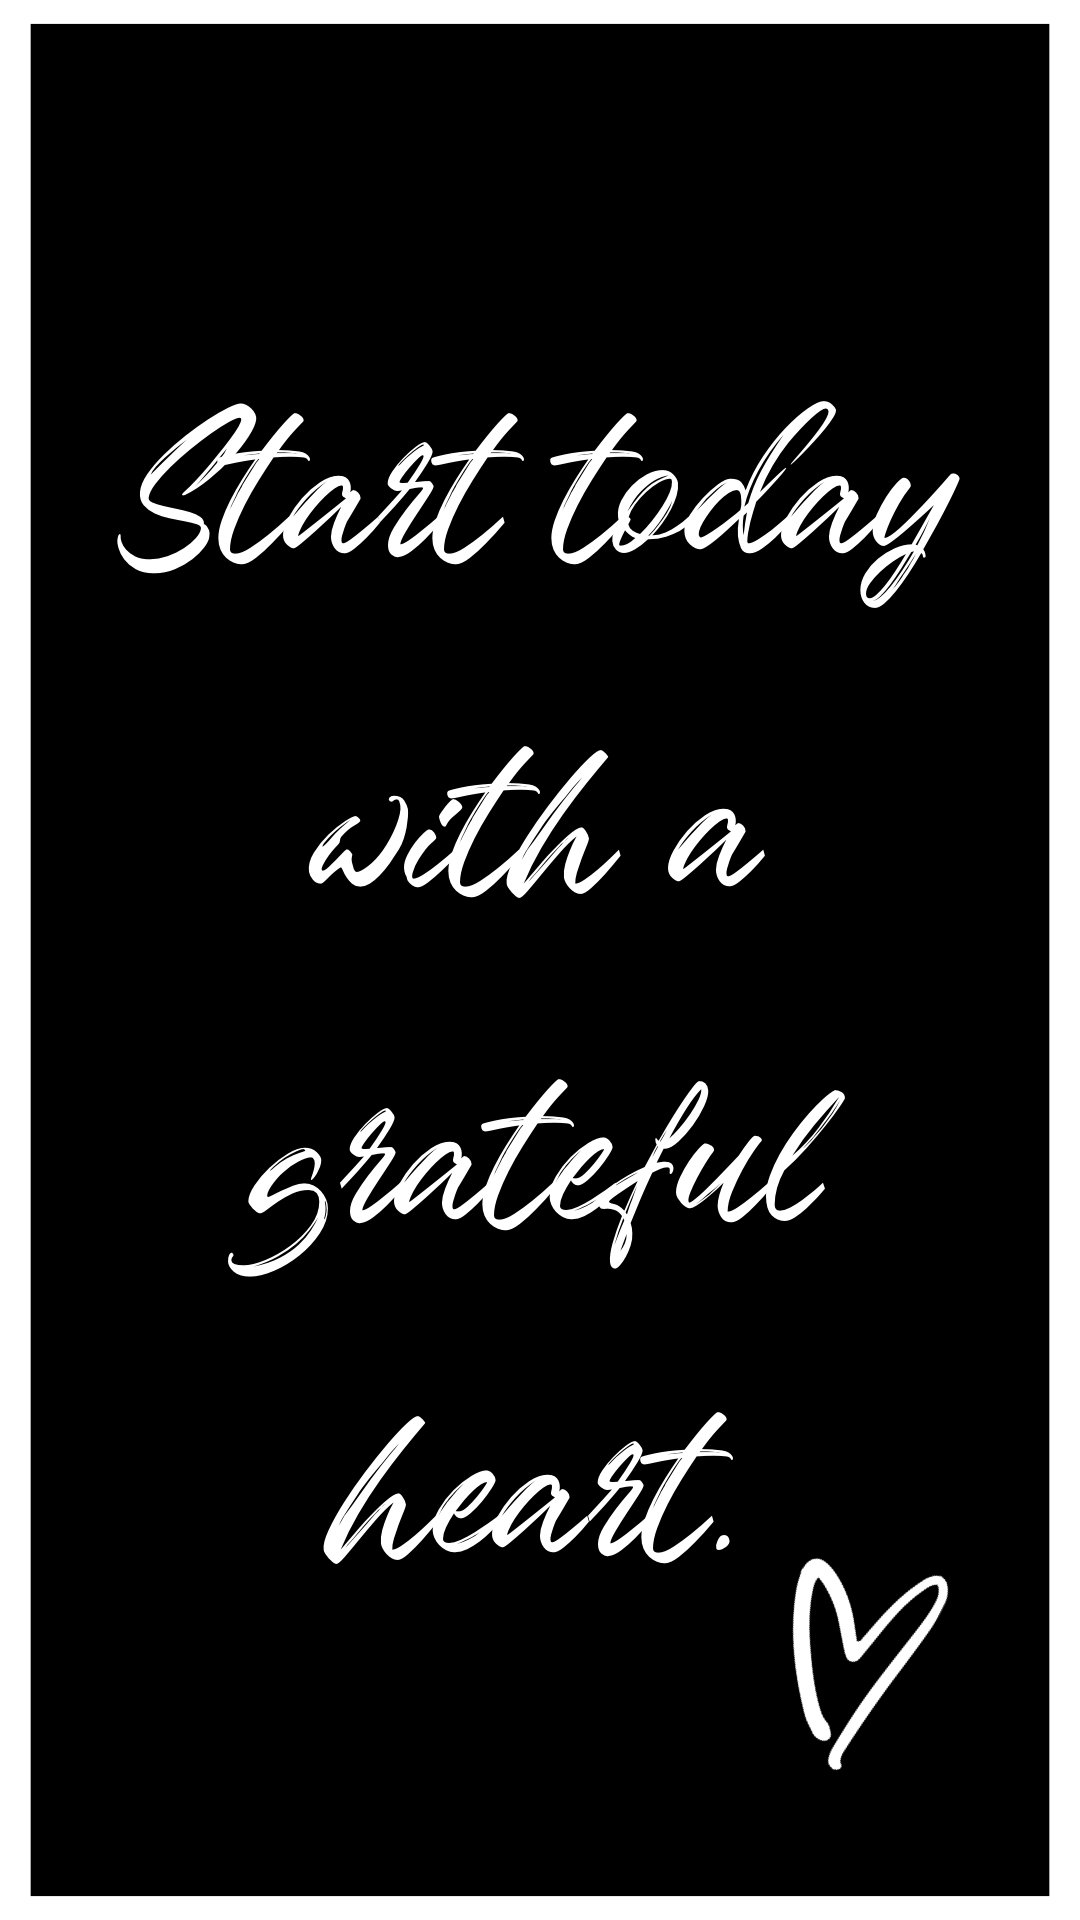 Phone Wallpaper Phone Backgrounds Quotes Free Phone Wallpapers Words To Live By Quotes Pretty Phone Wallpaper Comfort Quotes